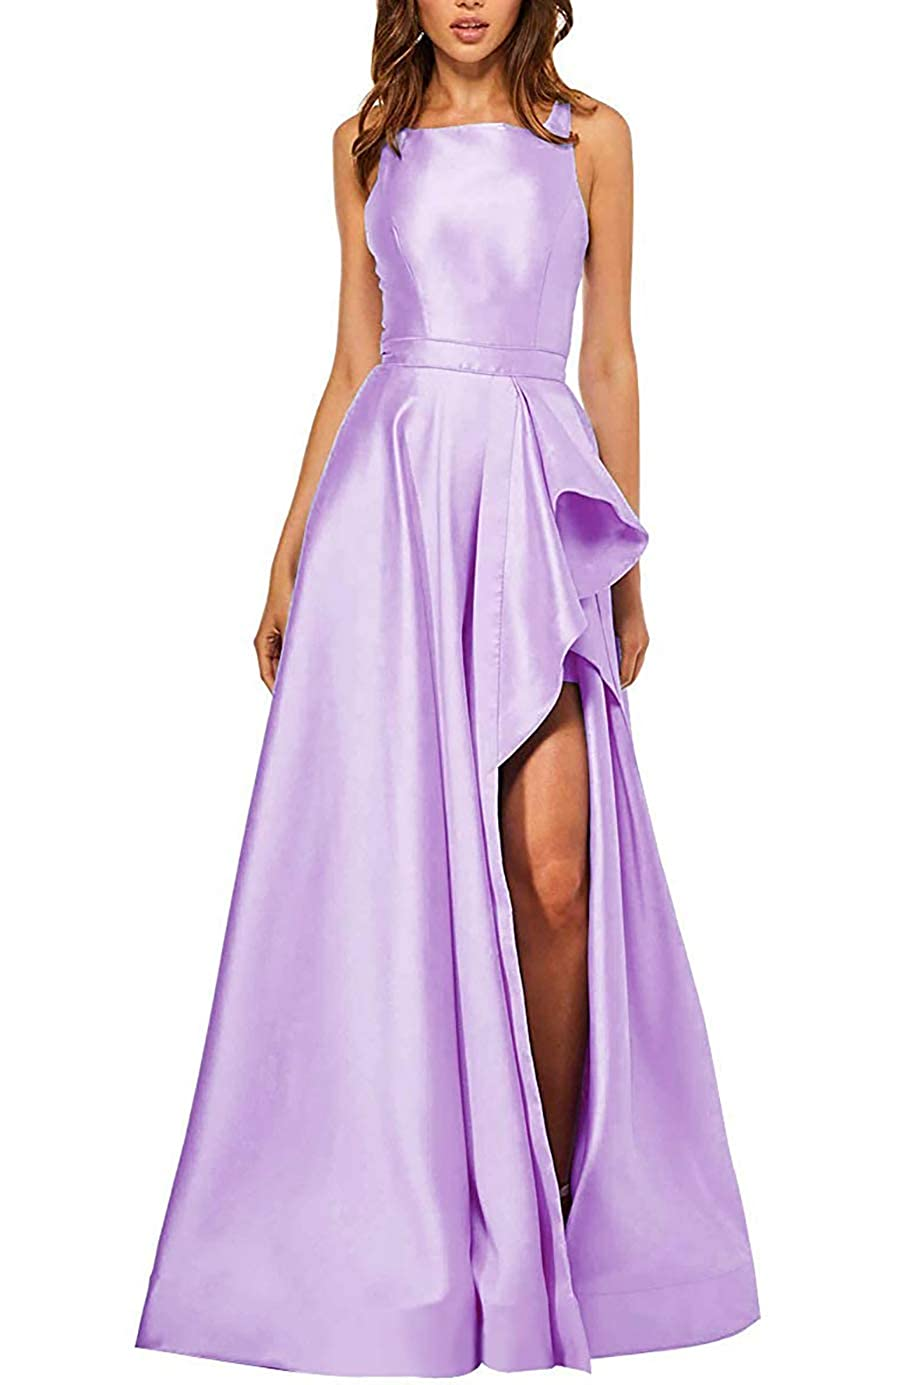 Begonia PrettyTatum Women's Backless Long Prom Dresses Formal Evening Ball Gowns with Split Pockets